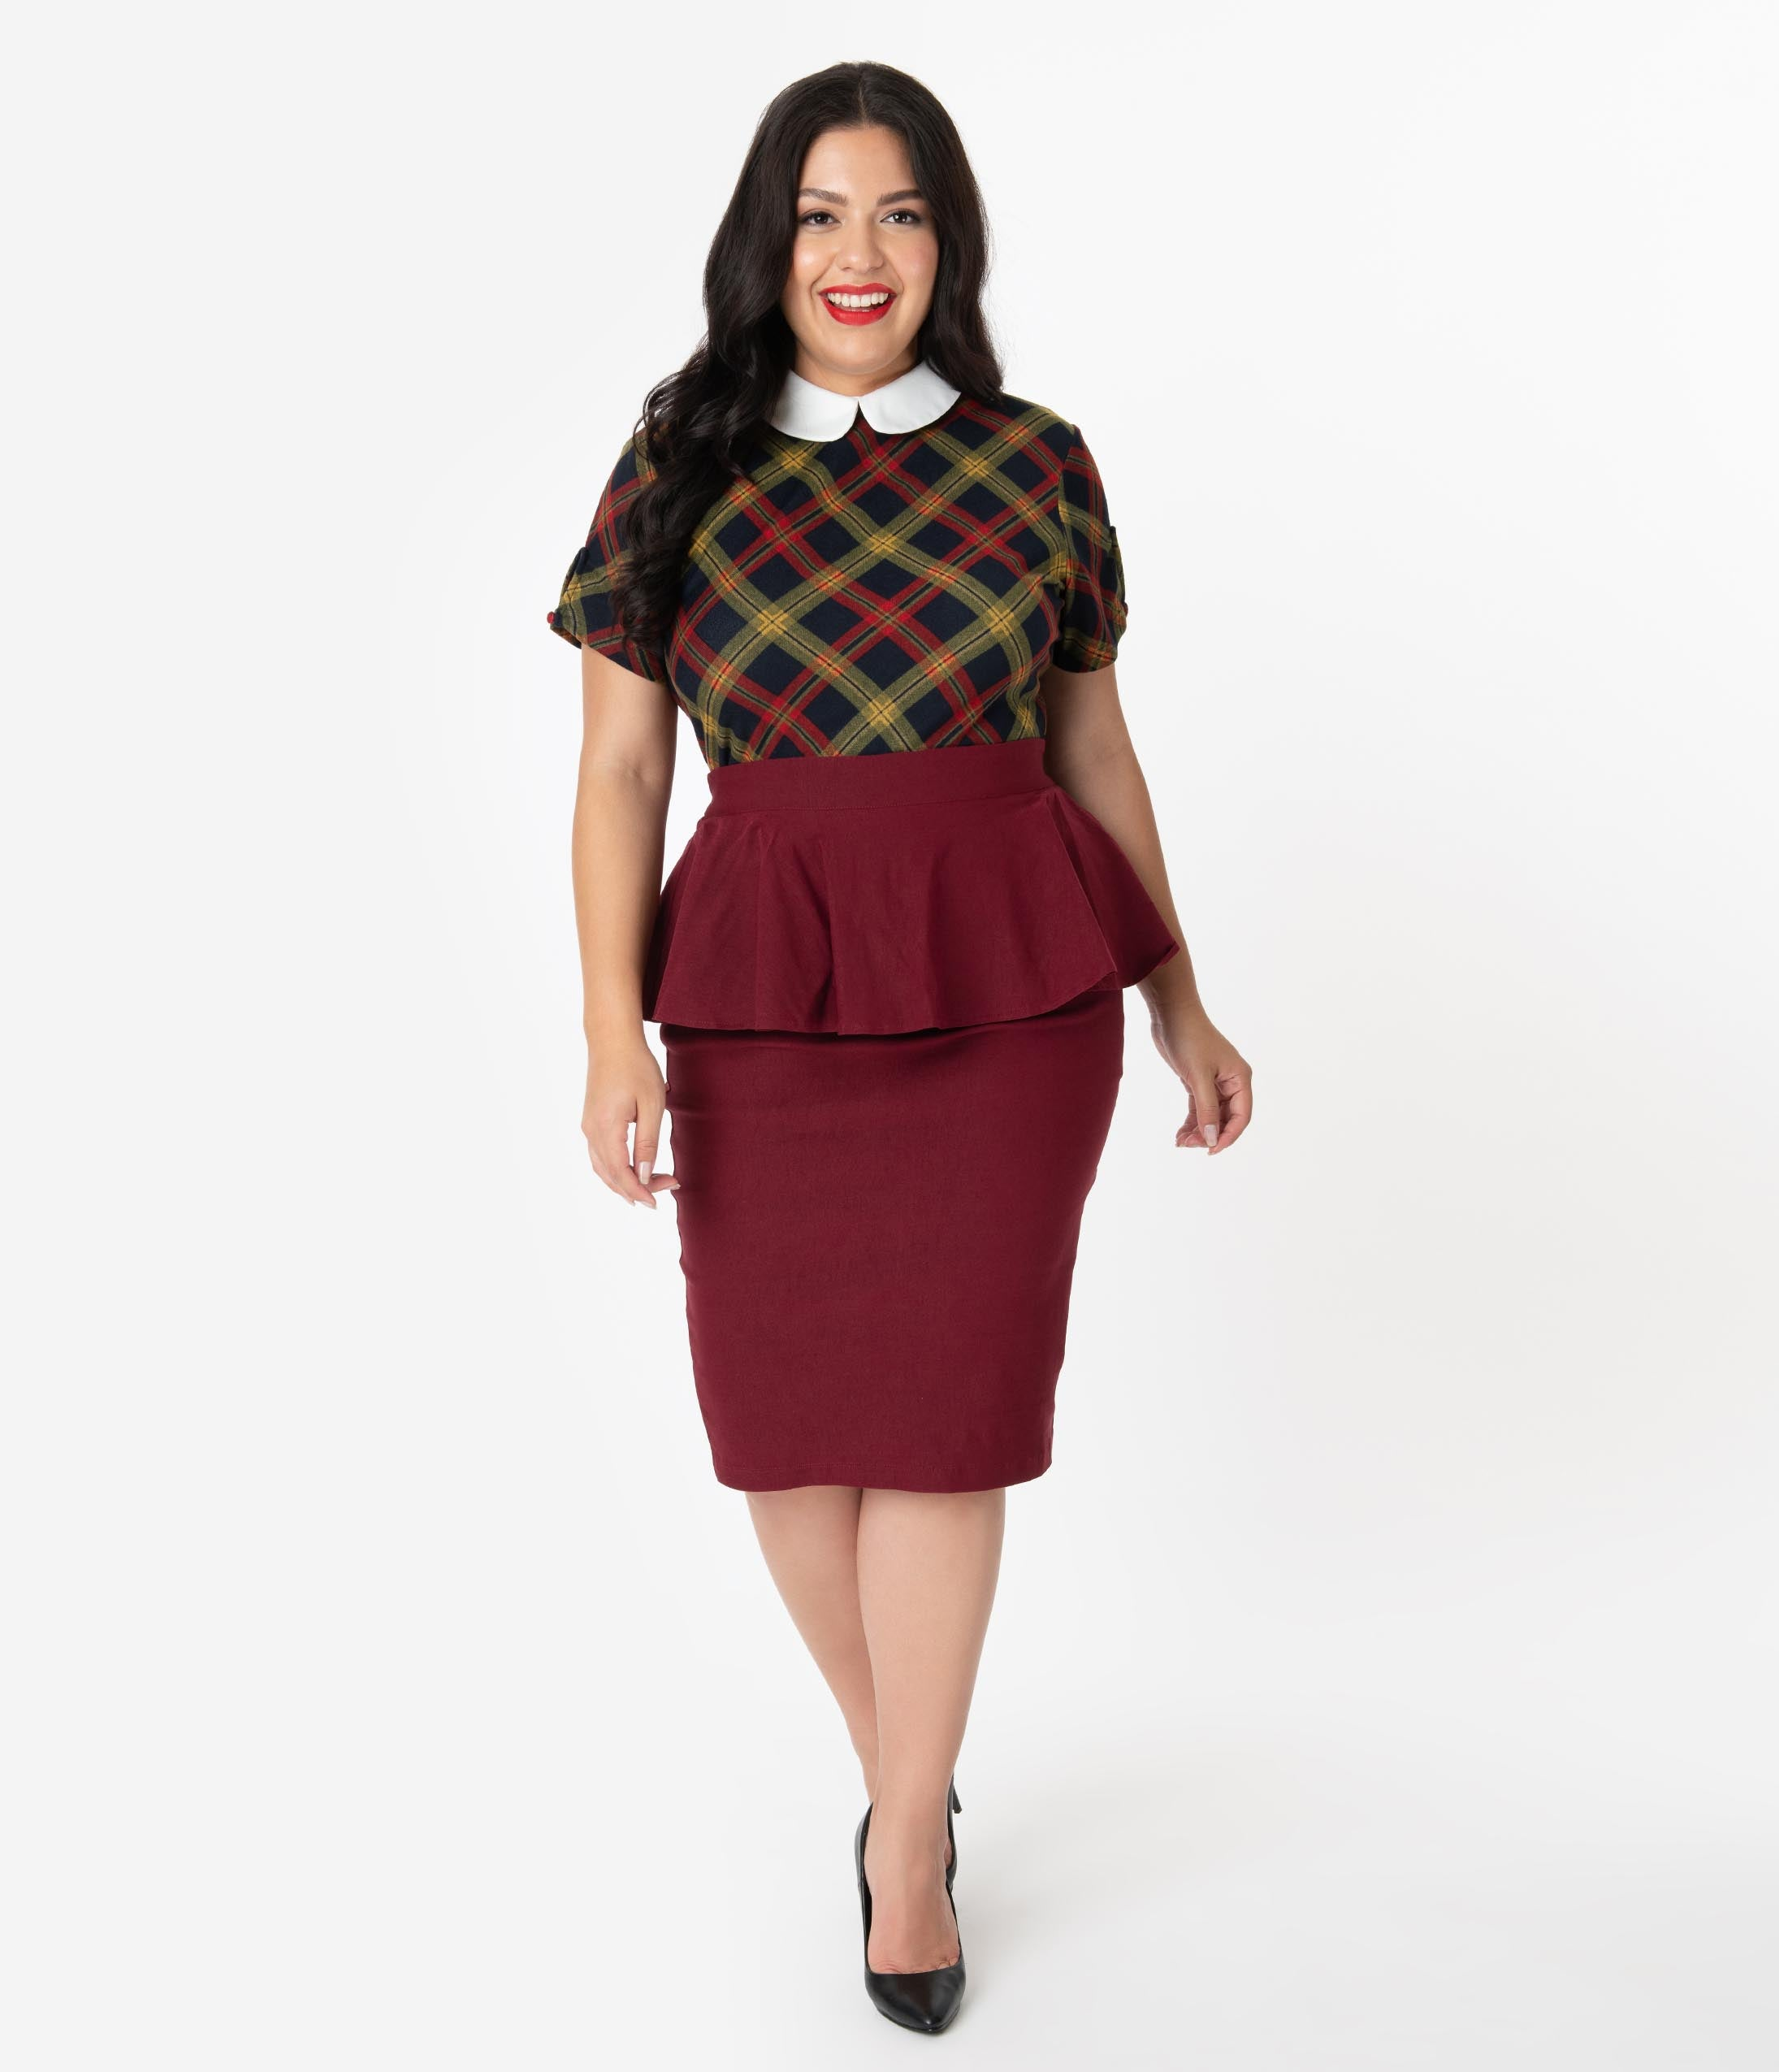 1940s Style Skirts- Vintage High Waisted Skirts Unique Vintage Plus Size 1940S Burgundy Stretch Peplum Boulevard Pencil Skirt $58.00 AT vintagedancer.com